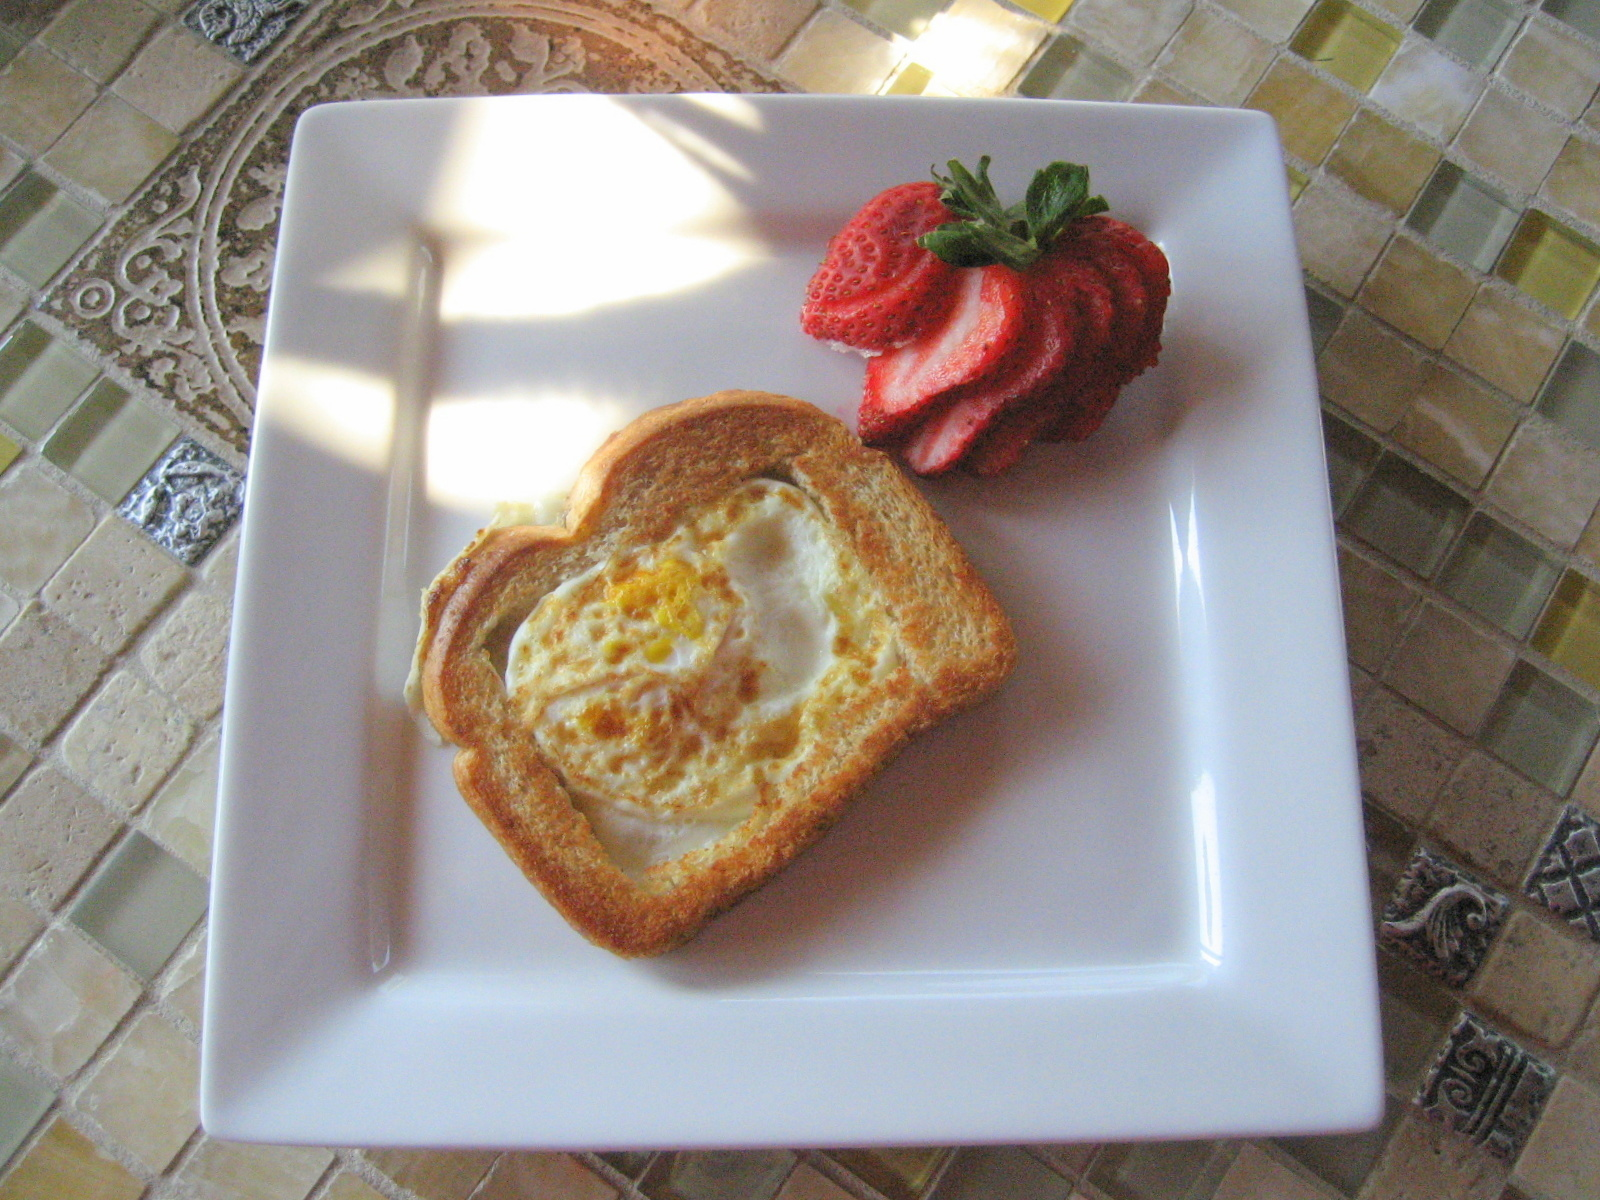 Breakfast Series: Egg in a Nest